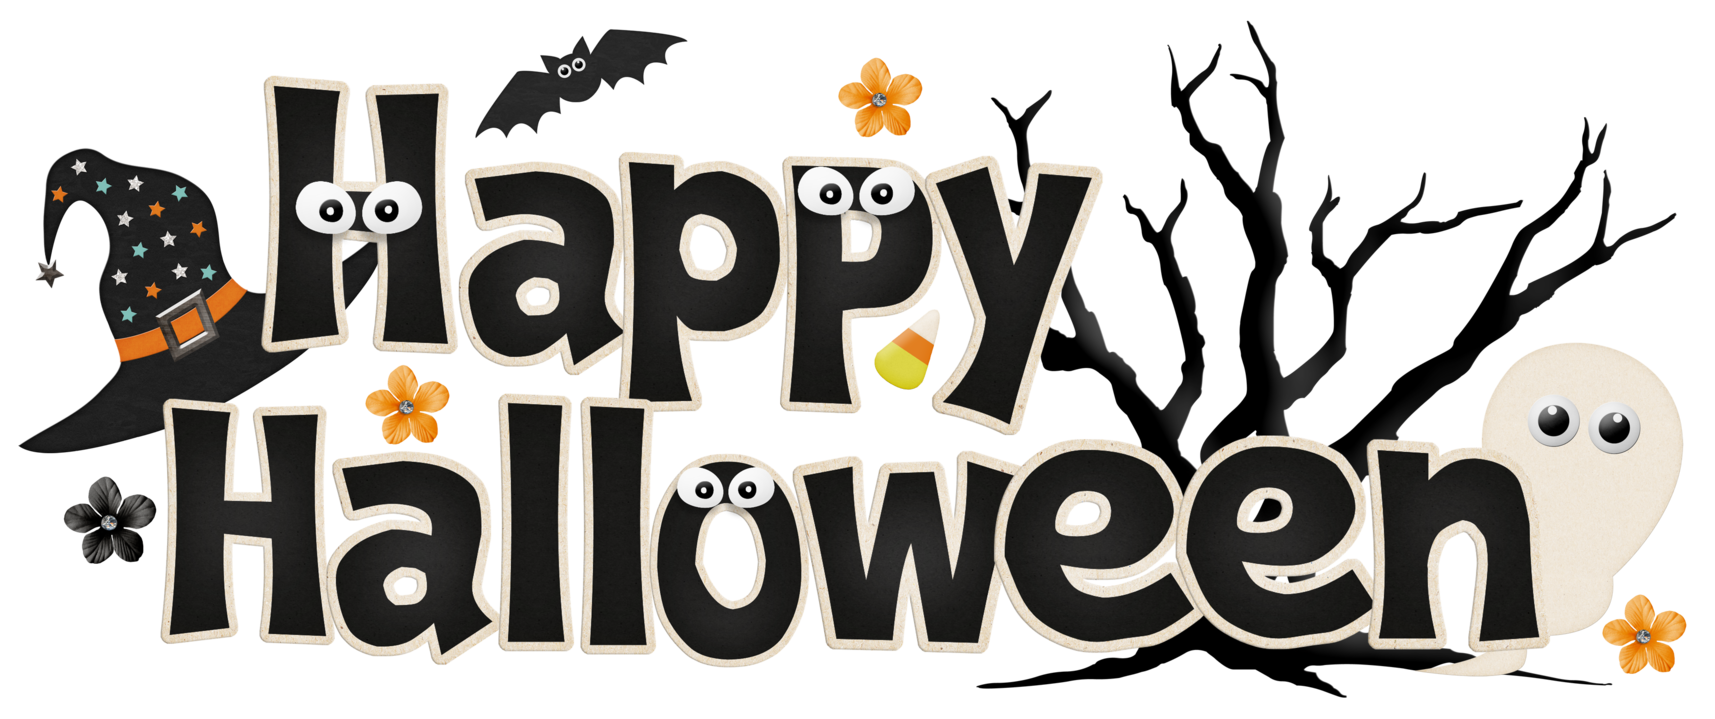 Halloween clipart tombstone picture transparent Month of october clipart free clipart images clipartwiz 2 clipartix ... picture transparent